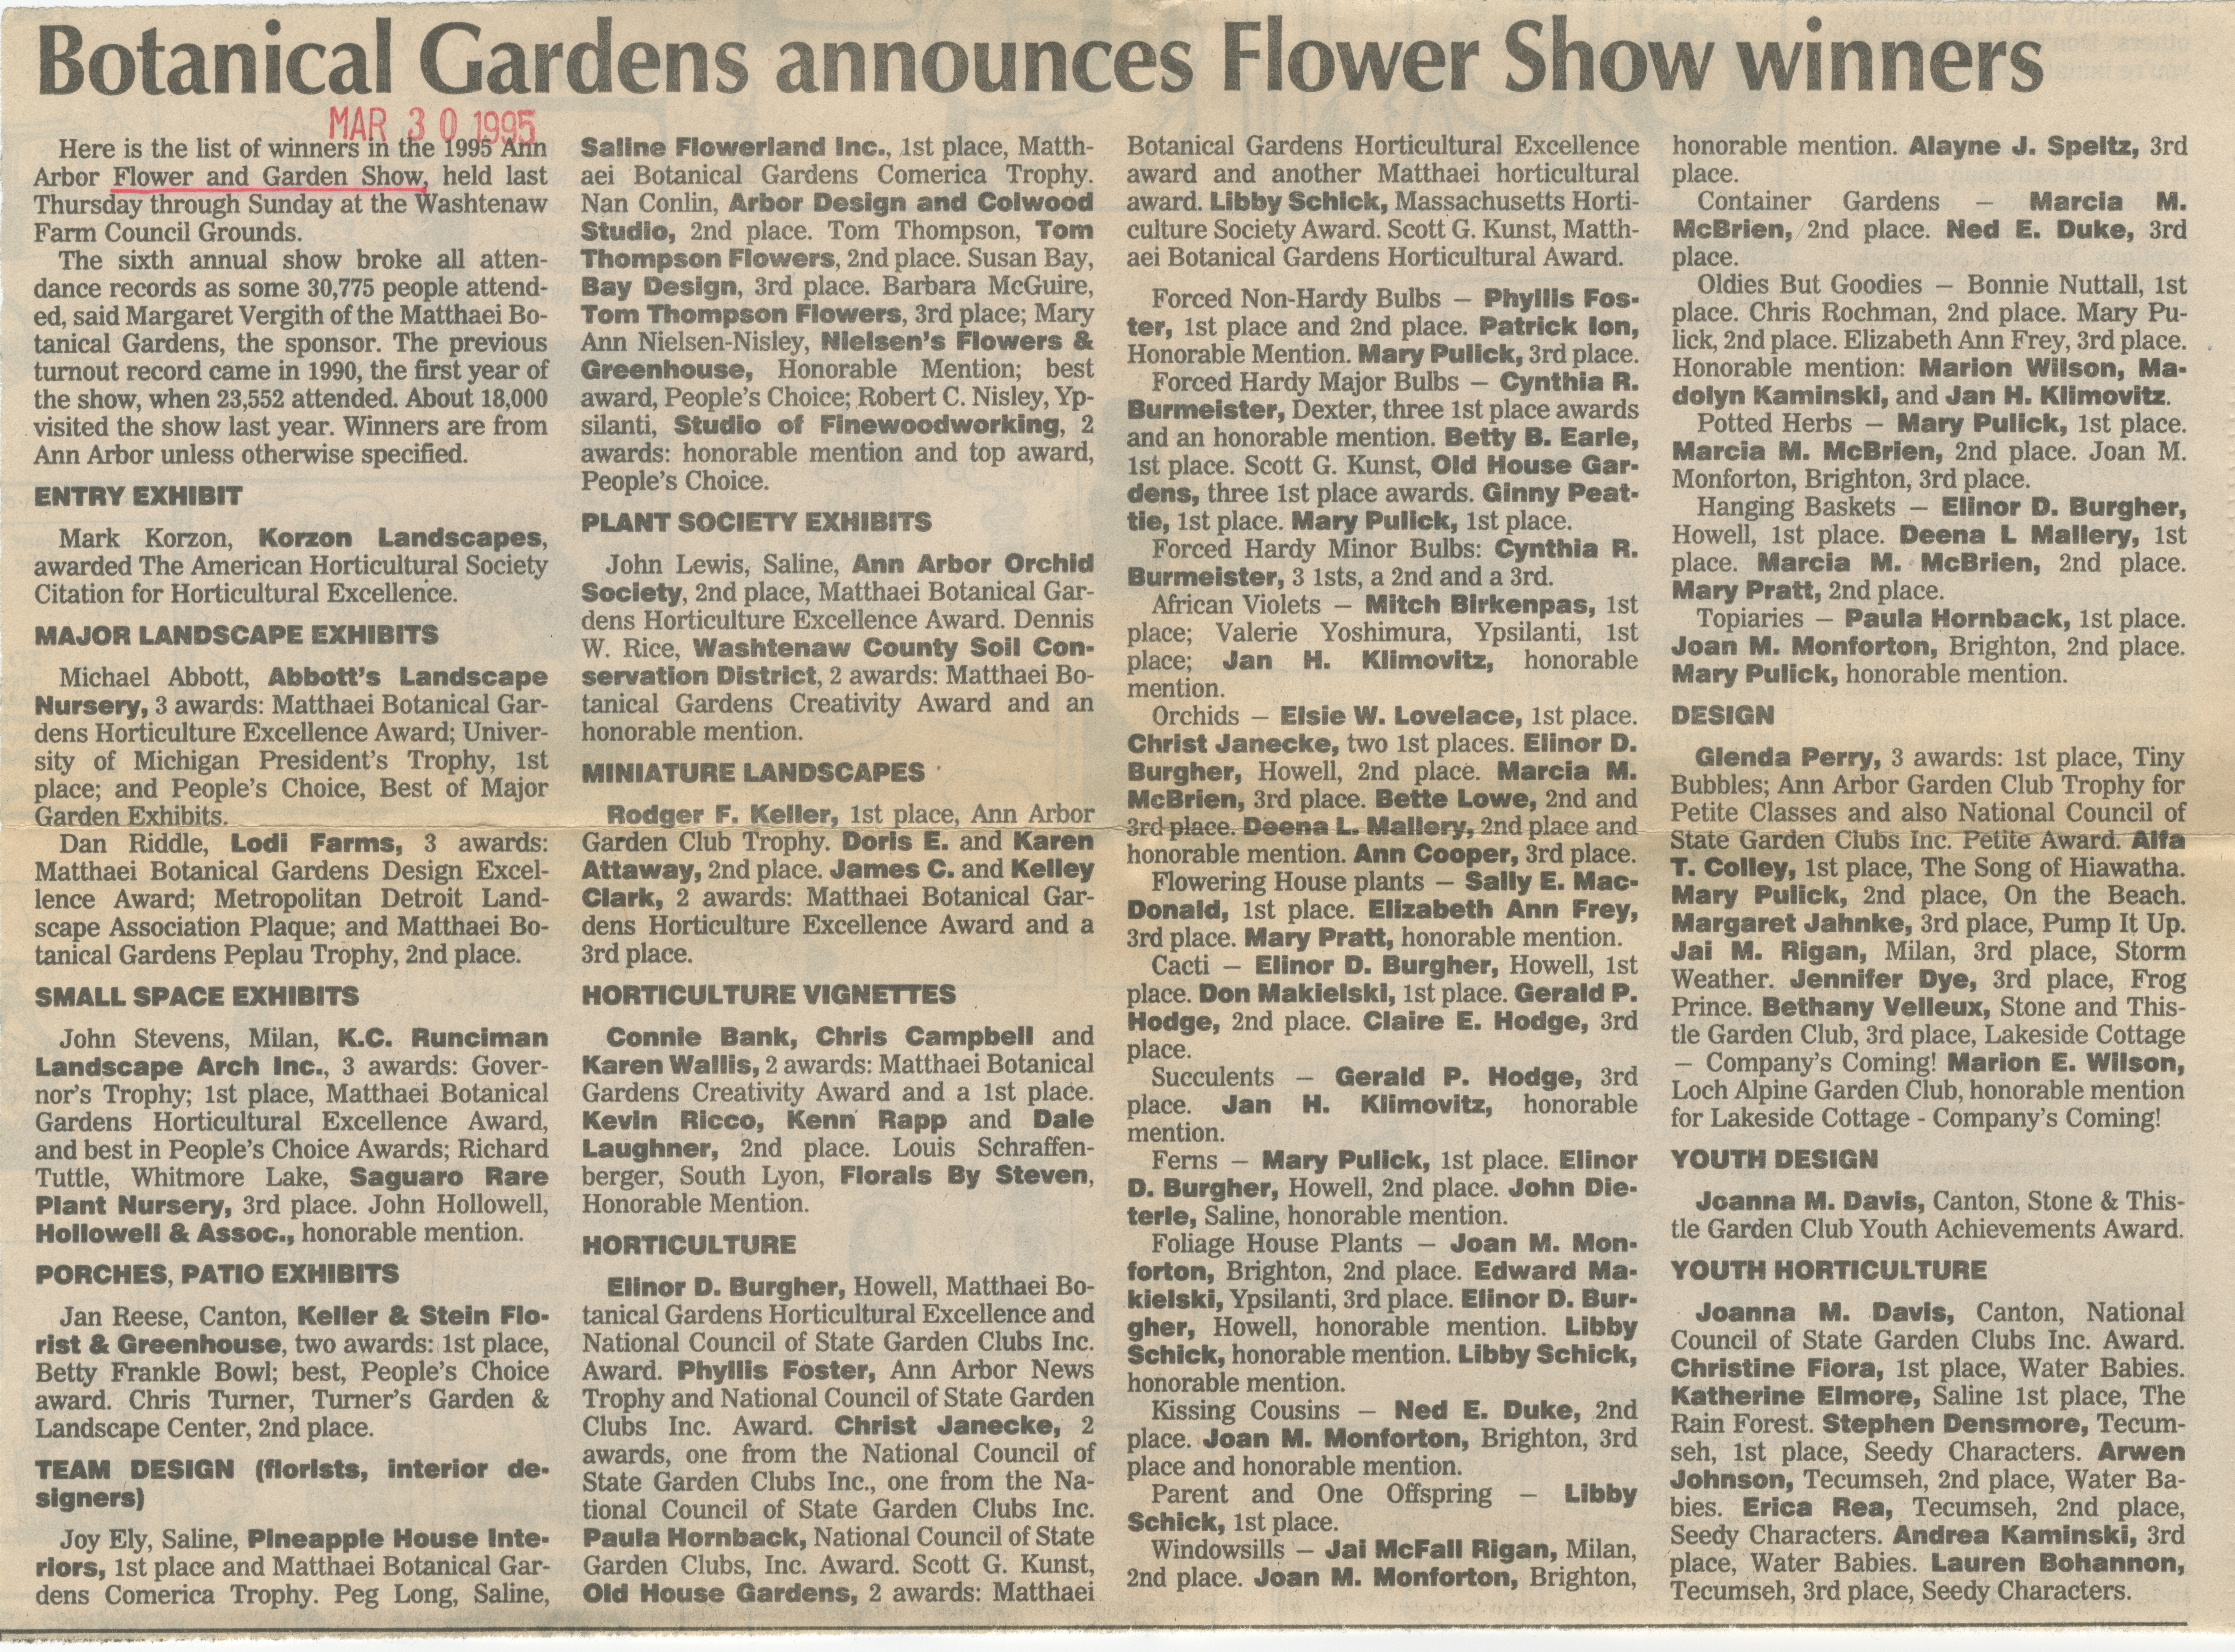 Botanical Gardens Announces Flower Show Winners image